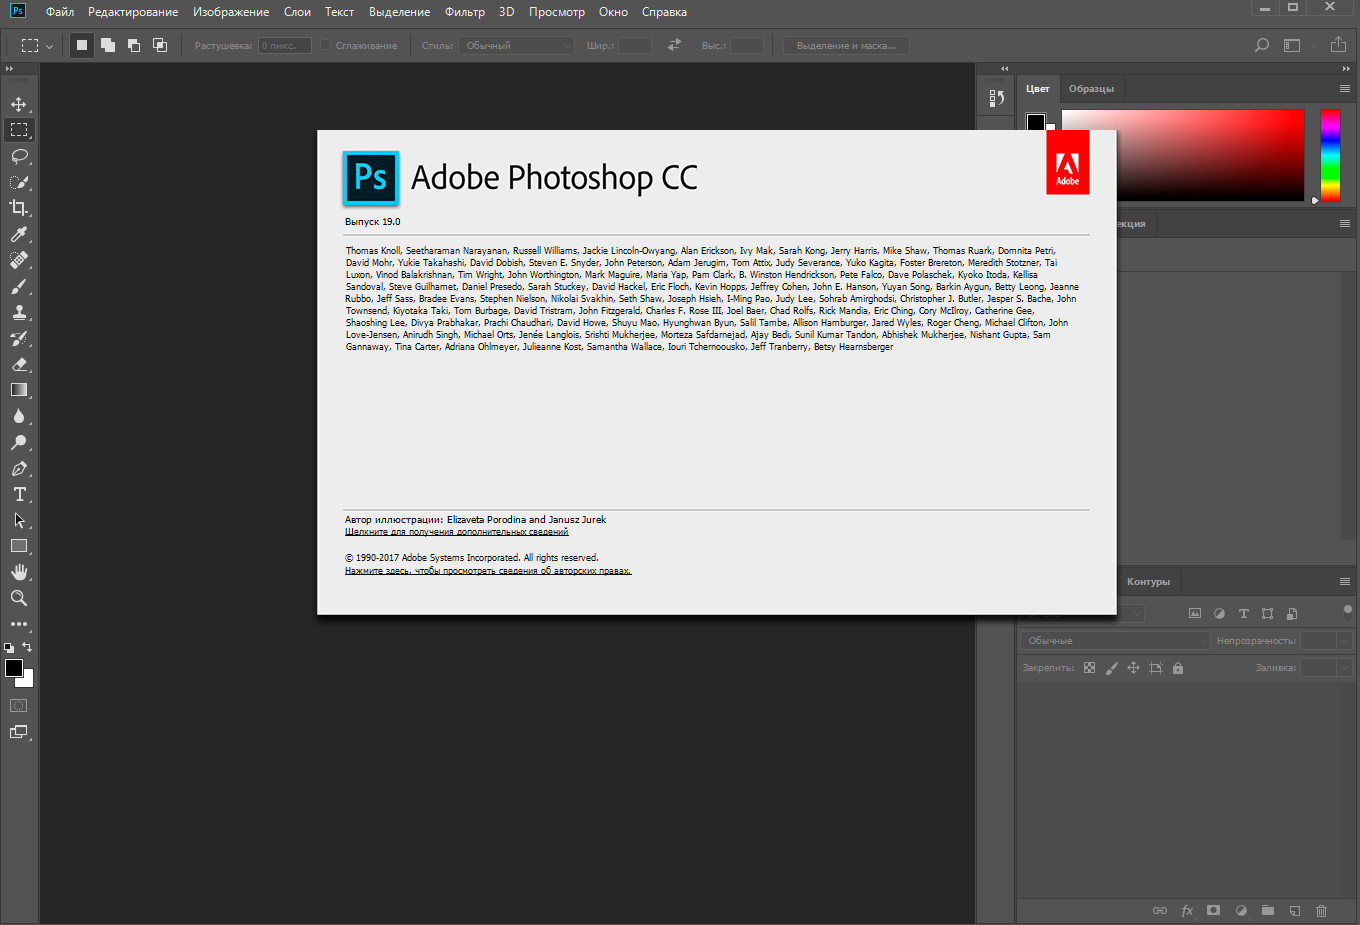 Adobe Photoshop CC 2018 [v19.0] [x86-x64] + Plugins (2017/PC/Русский), Portable by punsh